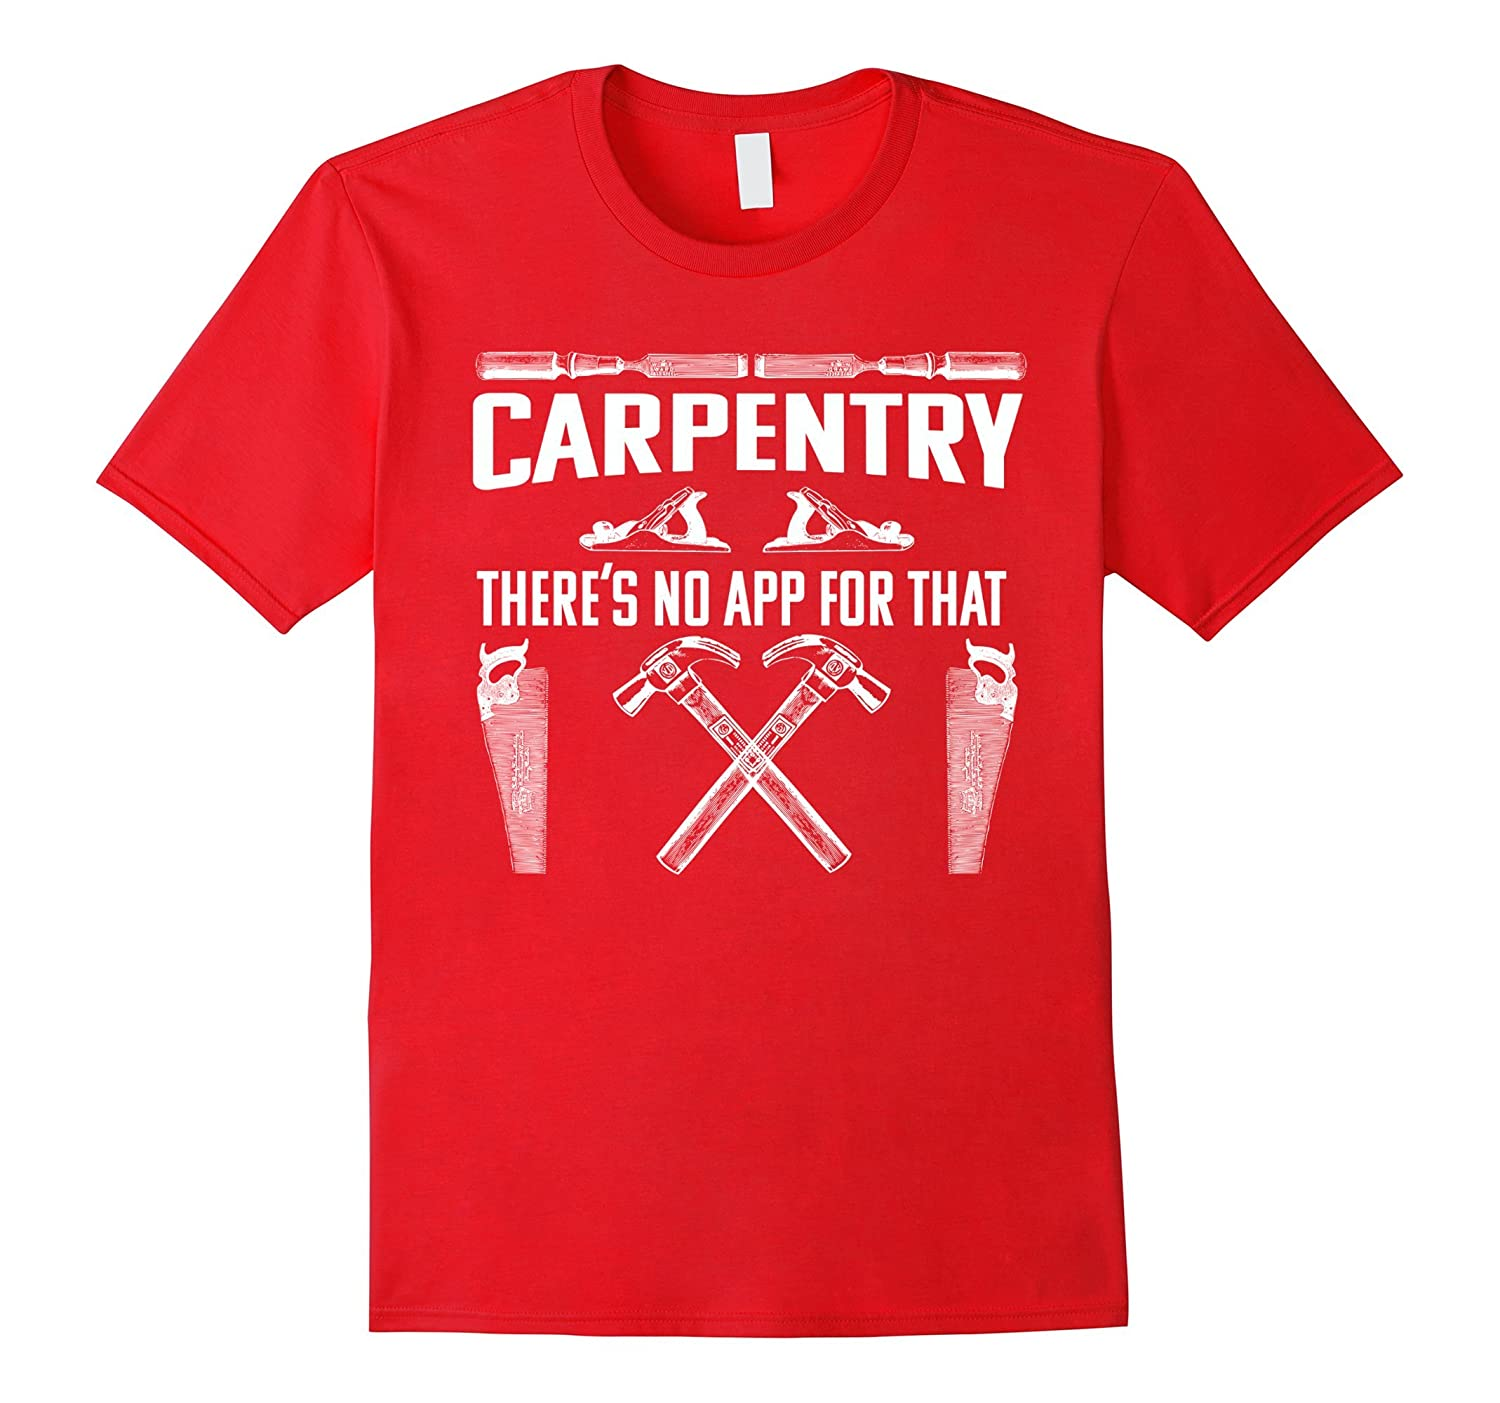 Carpentry theres no App for that - Carpenter T Shirt-TJ